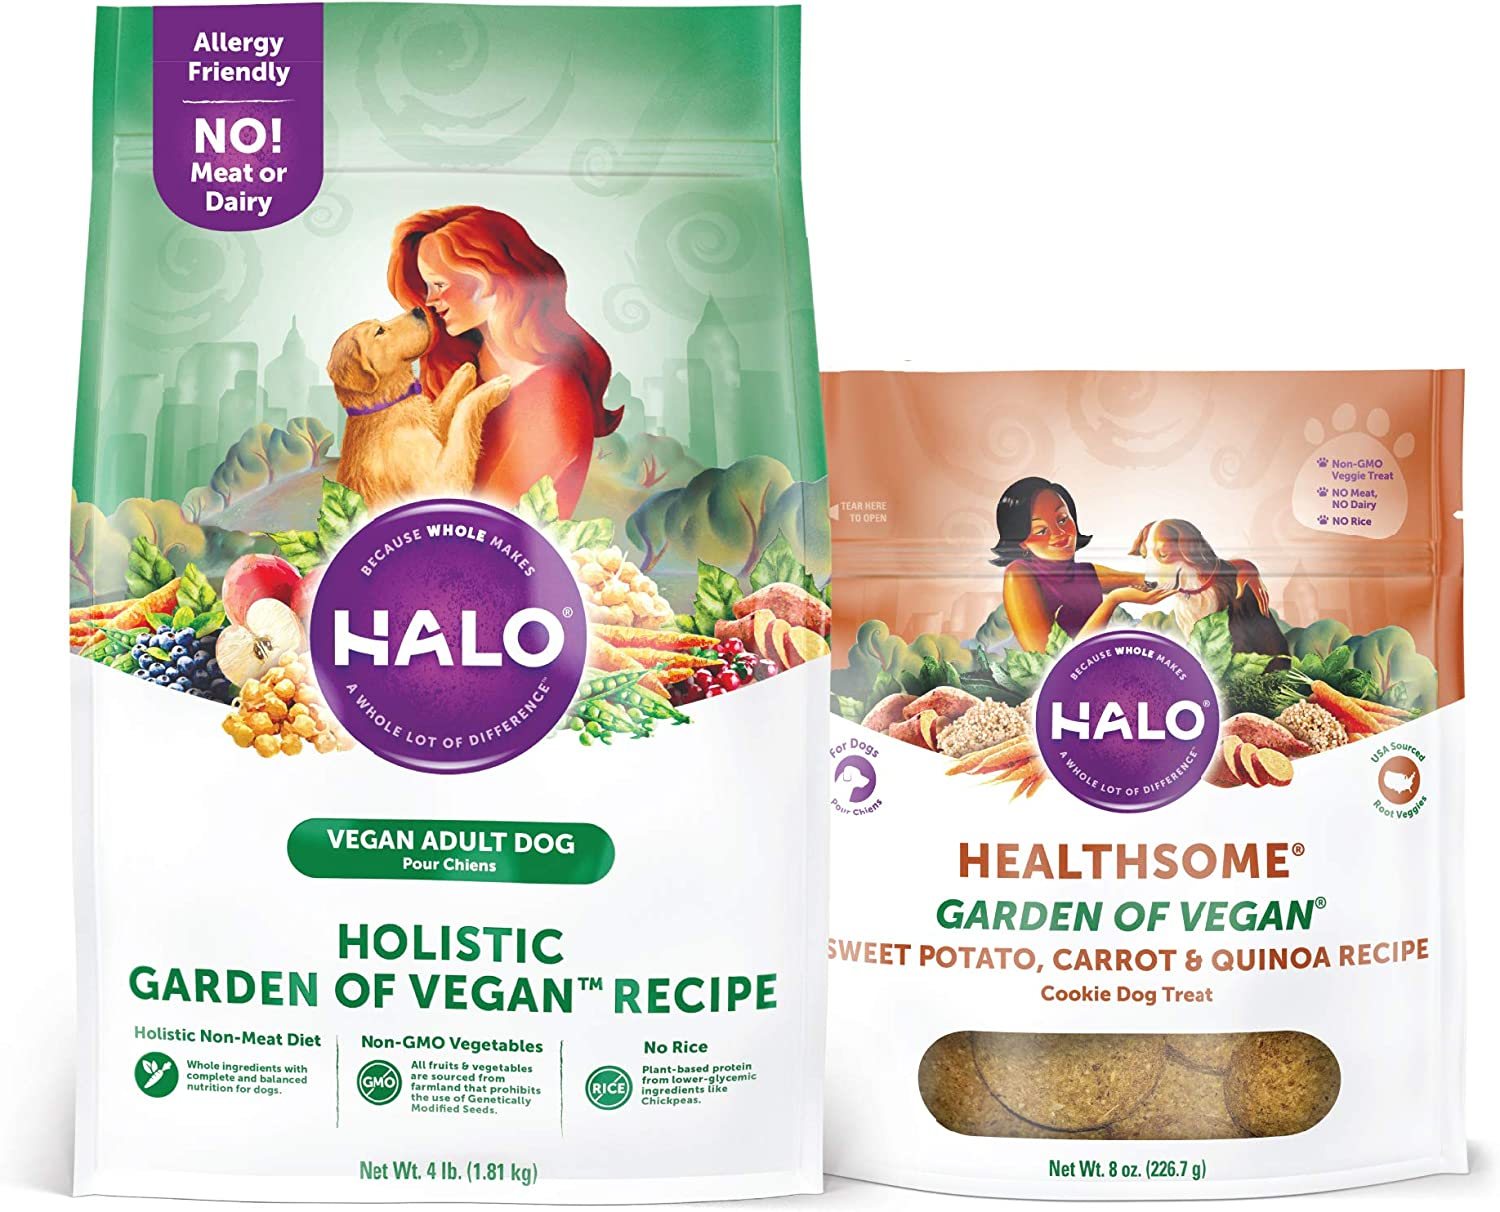 Halo Vegan Grain Free Natural Crunchy Dog Treats, Garden of Vegan Sweet Potato, Carrot, Quinoa Recipe, 8-Ounce Bag Plus Halo Vegan Dry Dog Food, Garden of Vegan Recipe, 4-Pound Bag